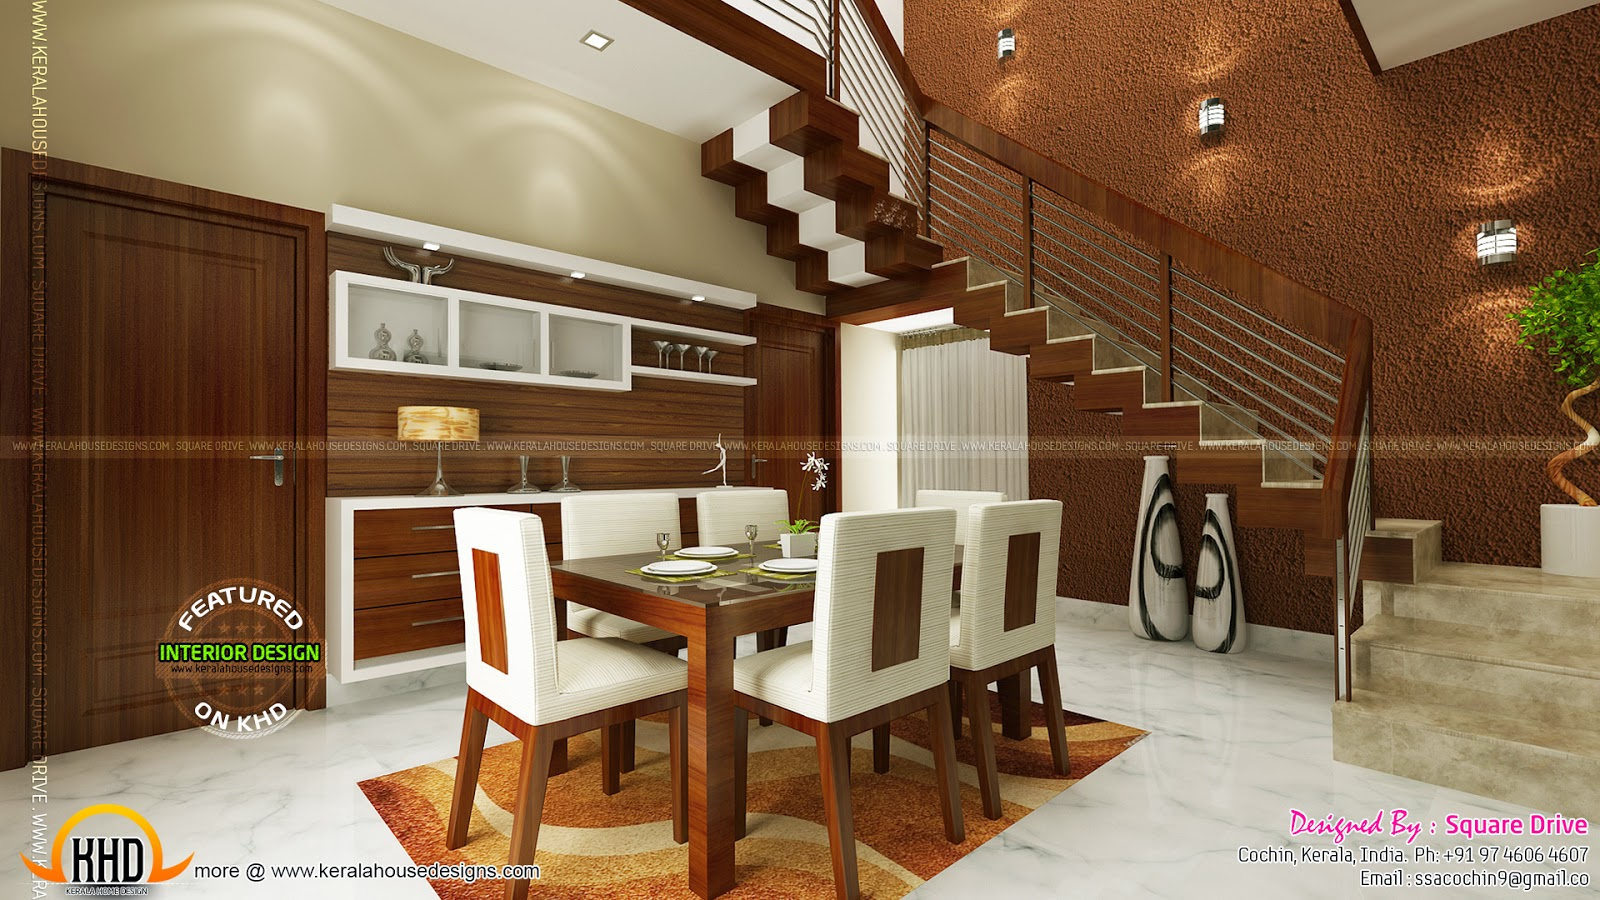 Cochin interior design kerala home design and floor plans Interior design ideas for kerala houses